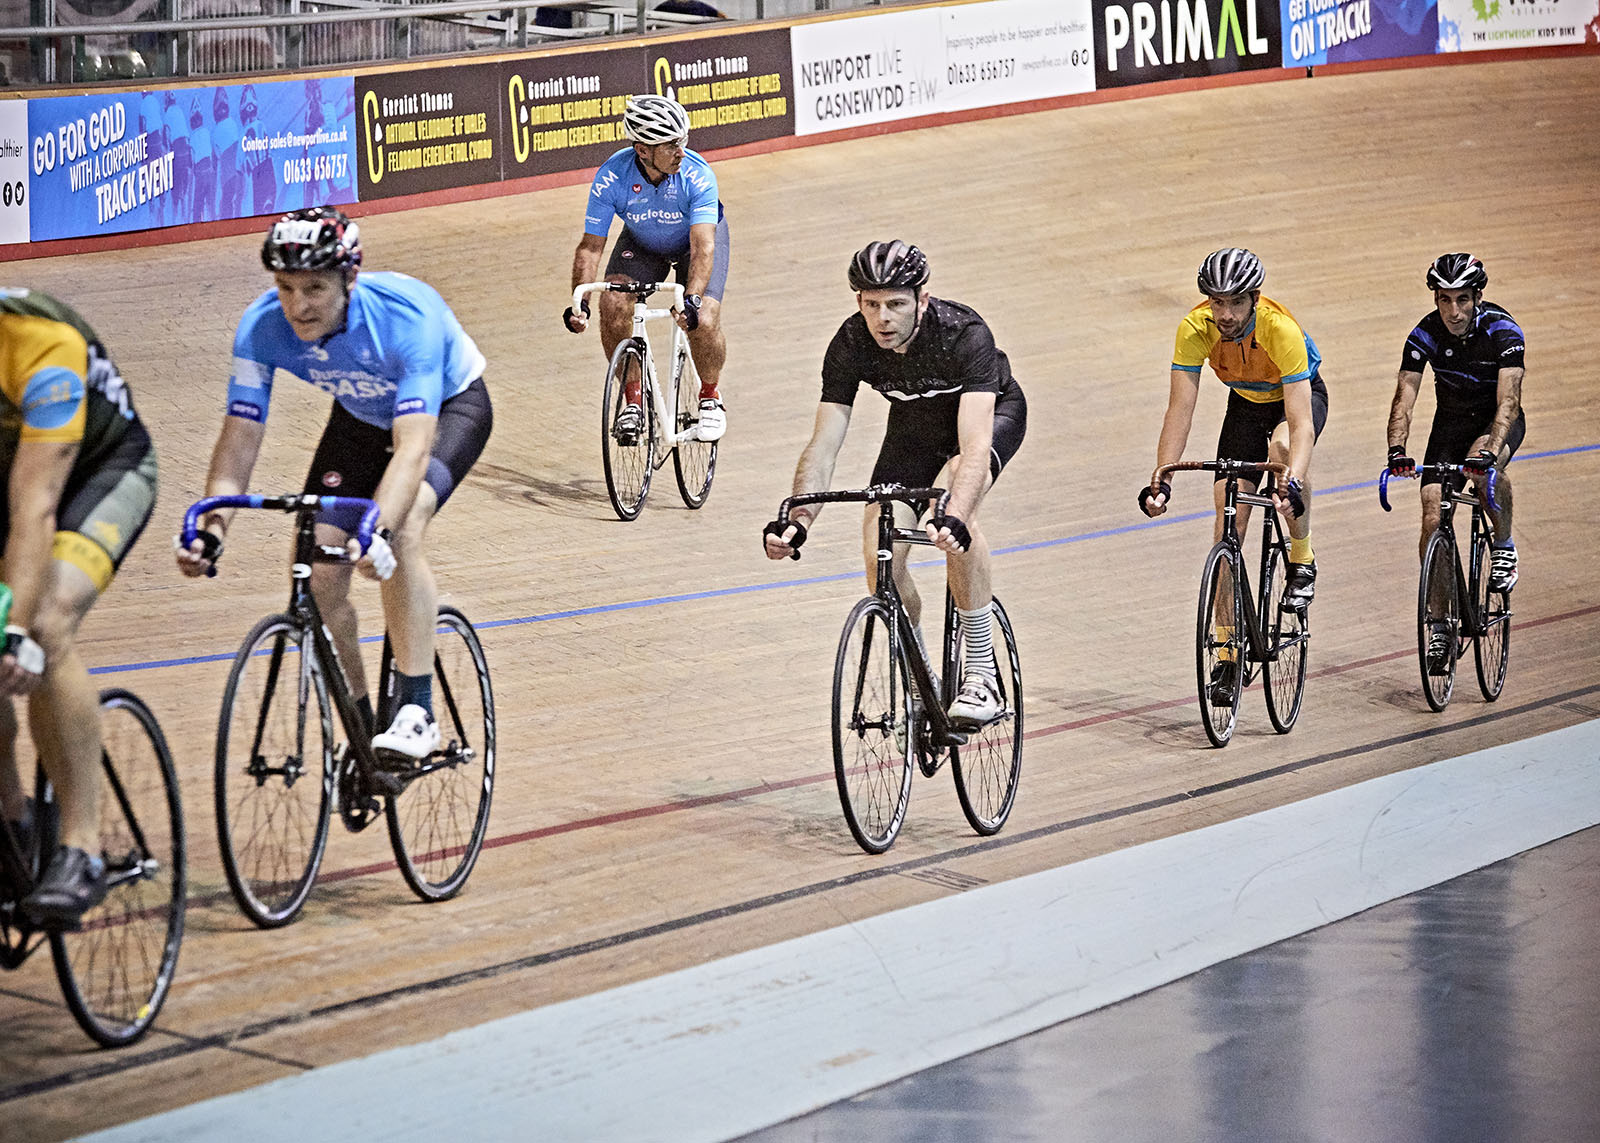 mix of people track cycling on an indoor track